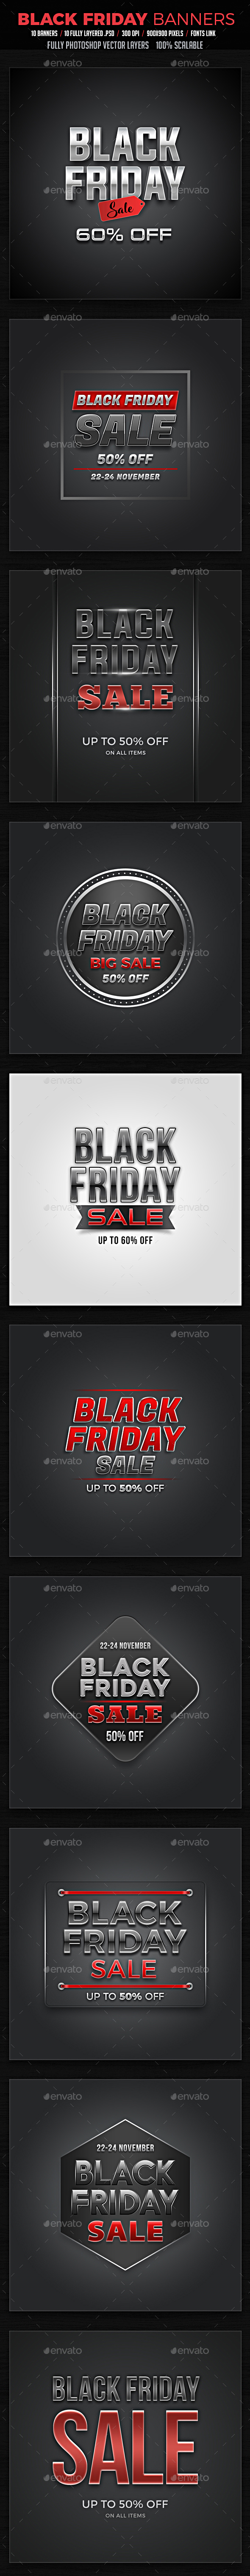 GraphicRiver Black Friday Banners 20897986